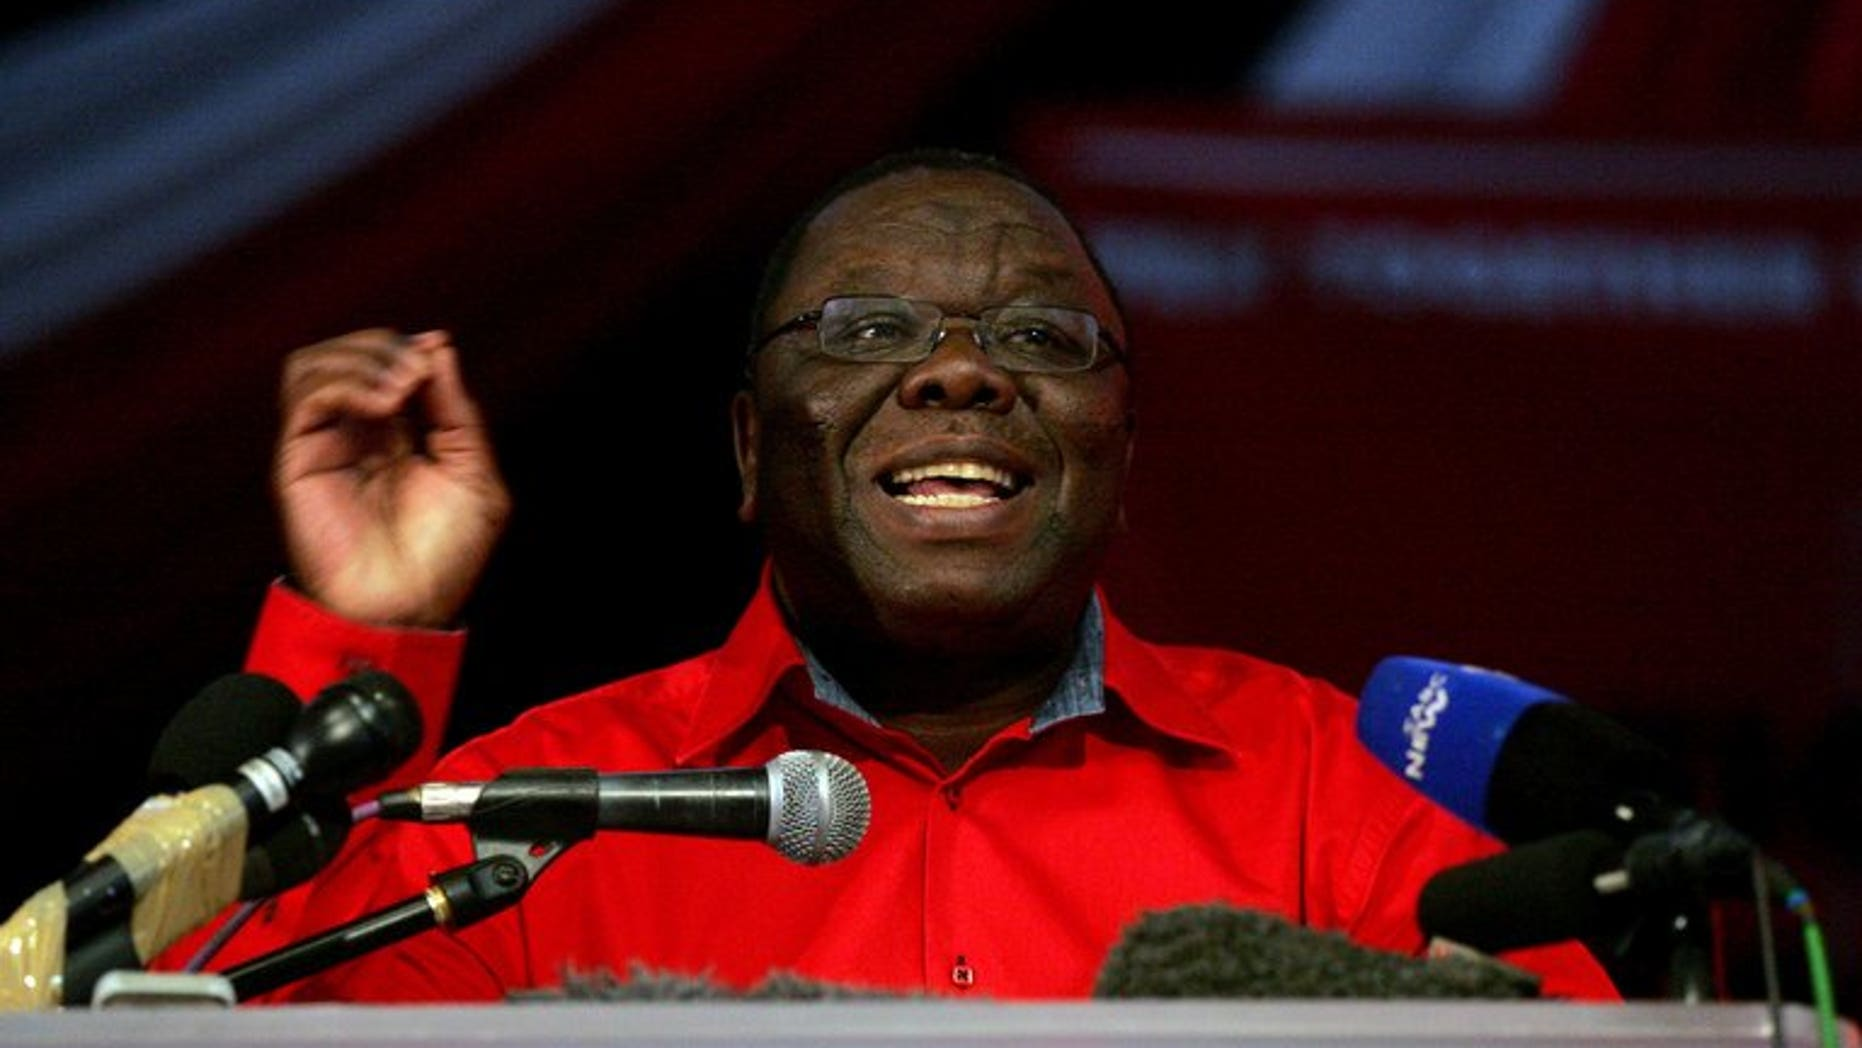 Zimbabwe Prime Minister Morgan Tsvangirai is pictured on May 17, 2013 in Harare. Nine supporters of Tsvangirai were injured during an attack Wednesday by suspected activists from veteran President Robert Mugabe's party, a party spokesman said.